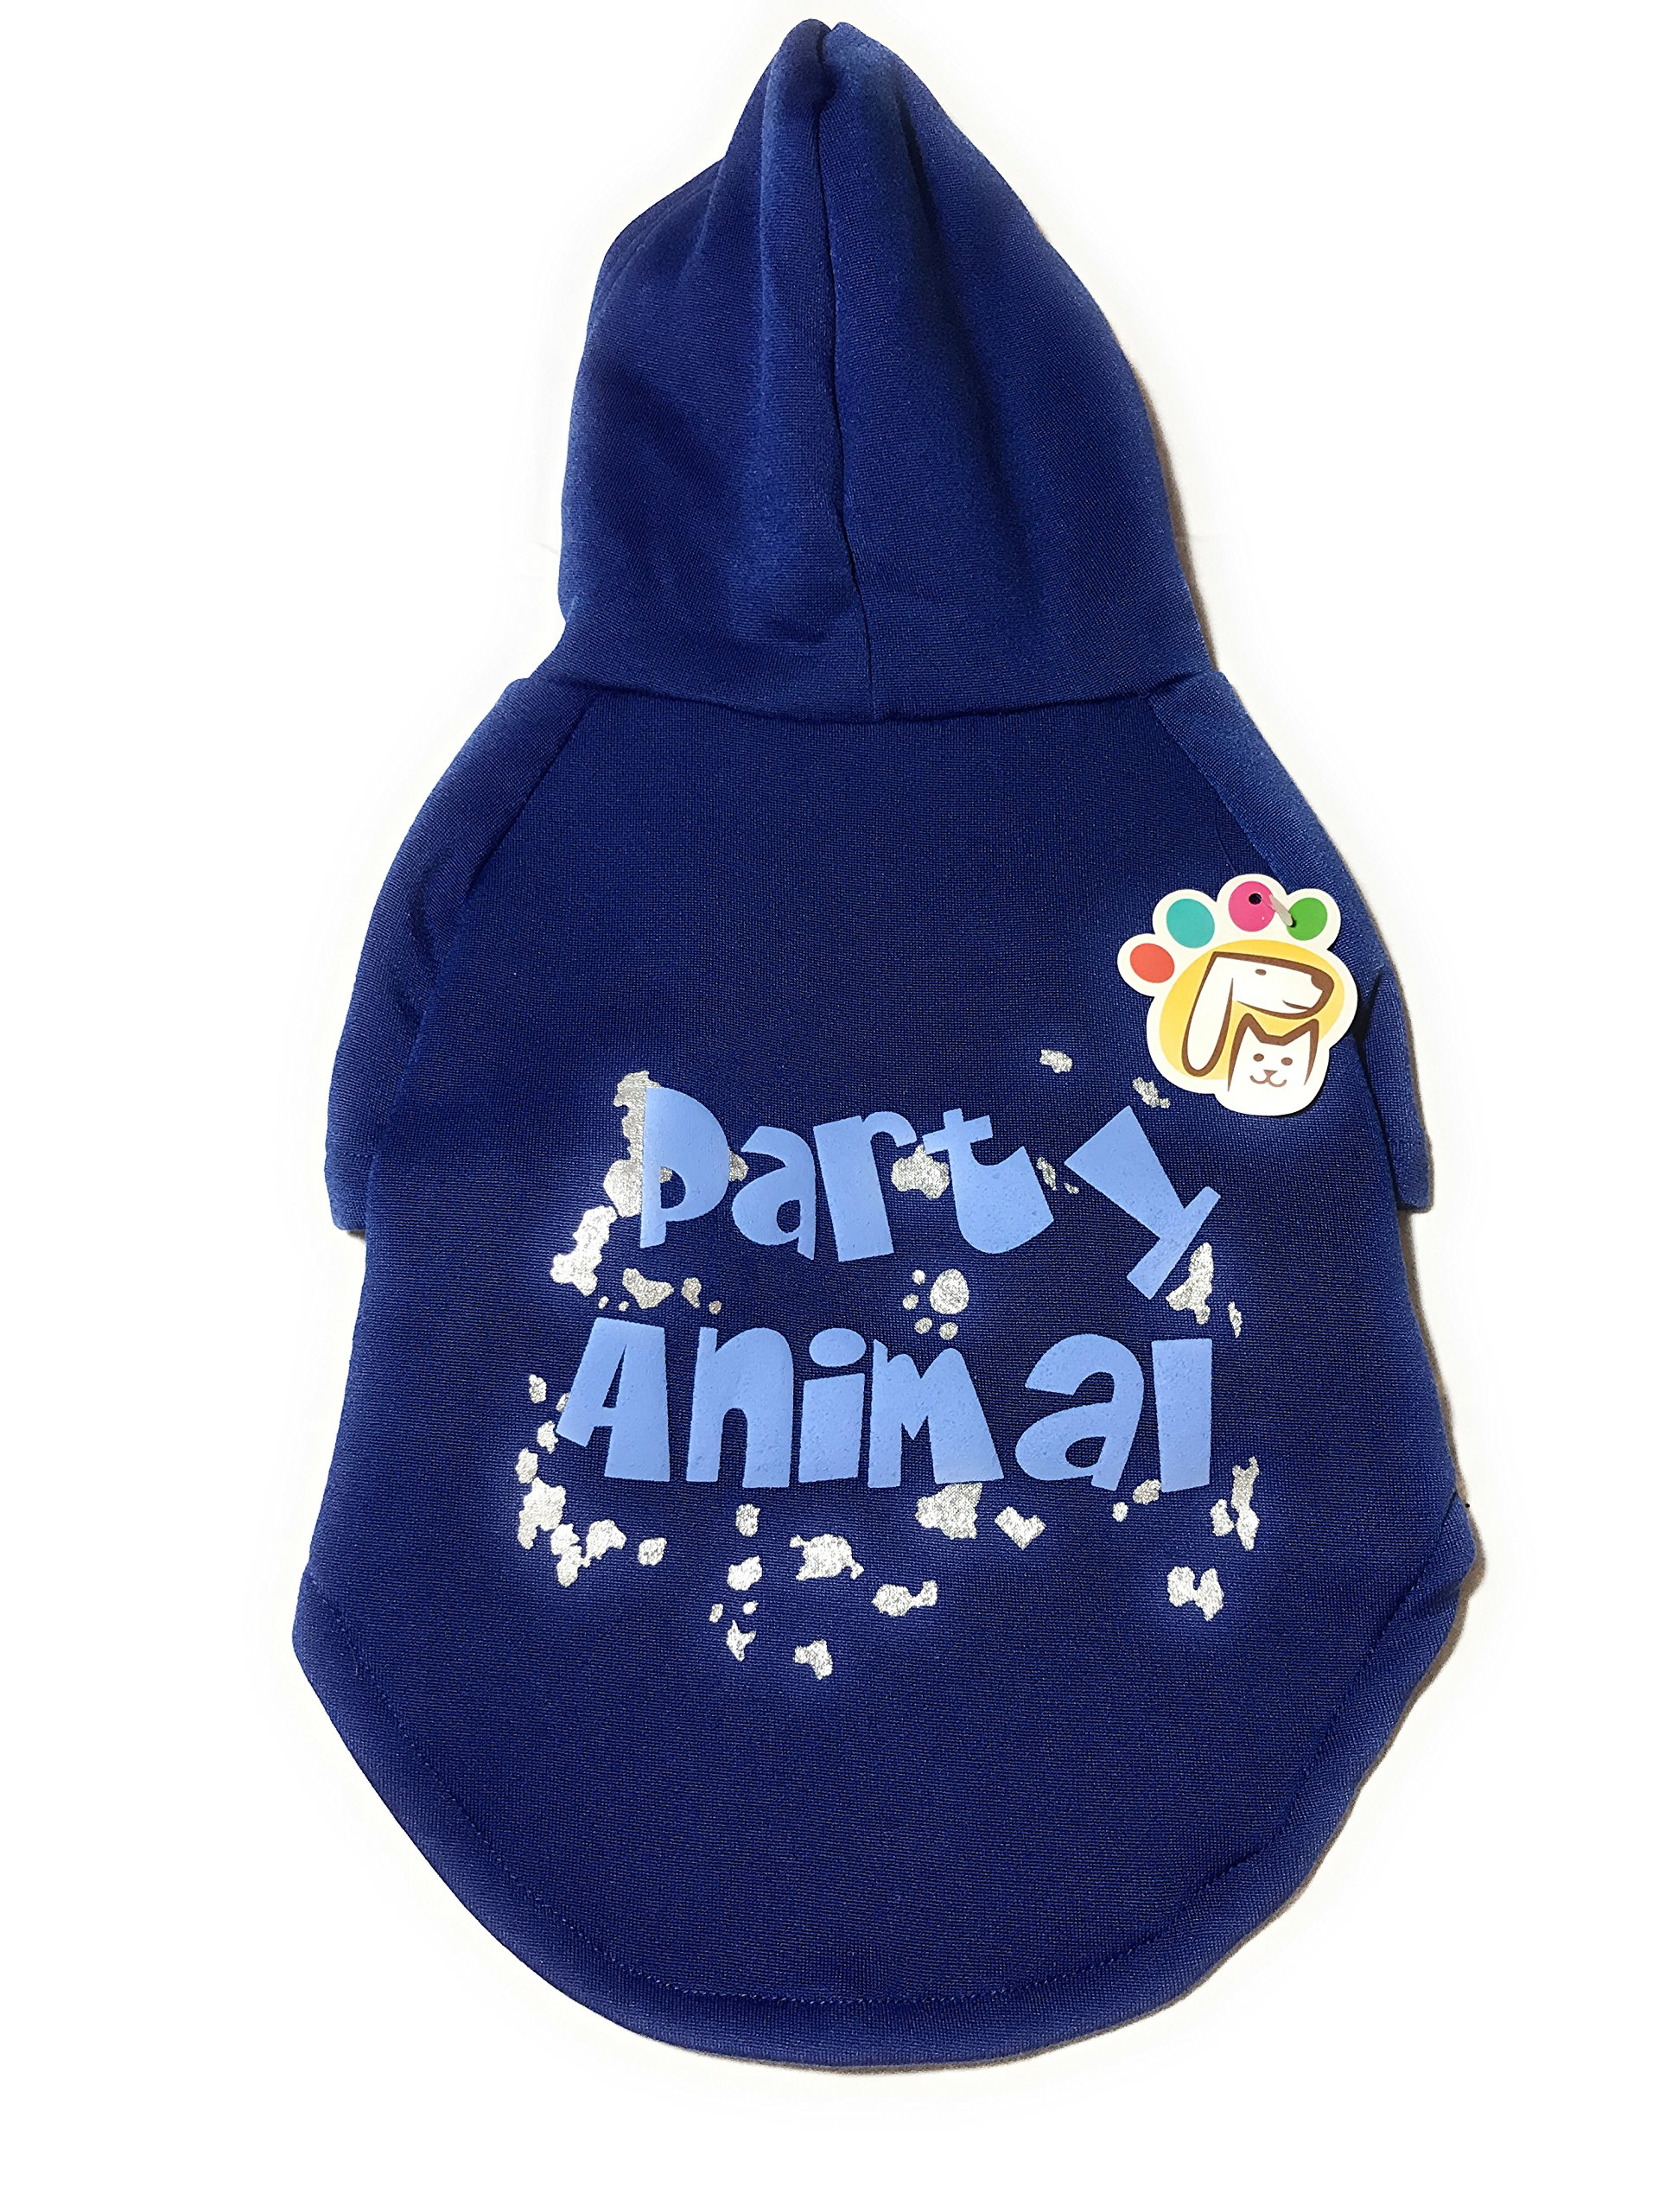 Dog or Puppy Sweater Hoodie ´Party Animal´ Blue and Silver for Large or Extra Large Pets XL size/ Extra Large Fashion and Funny Hoodie Shirt Petmont Brand For Boys Or Girls